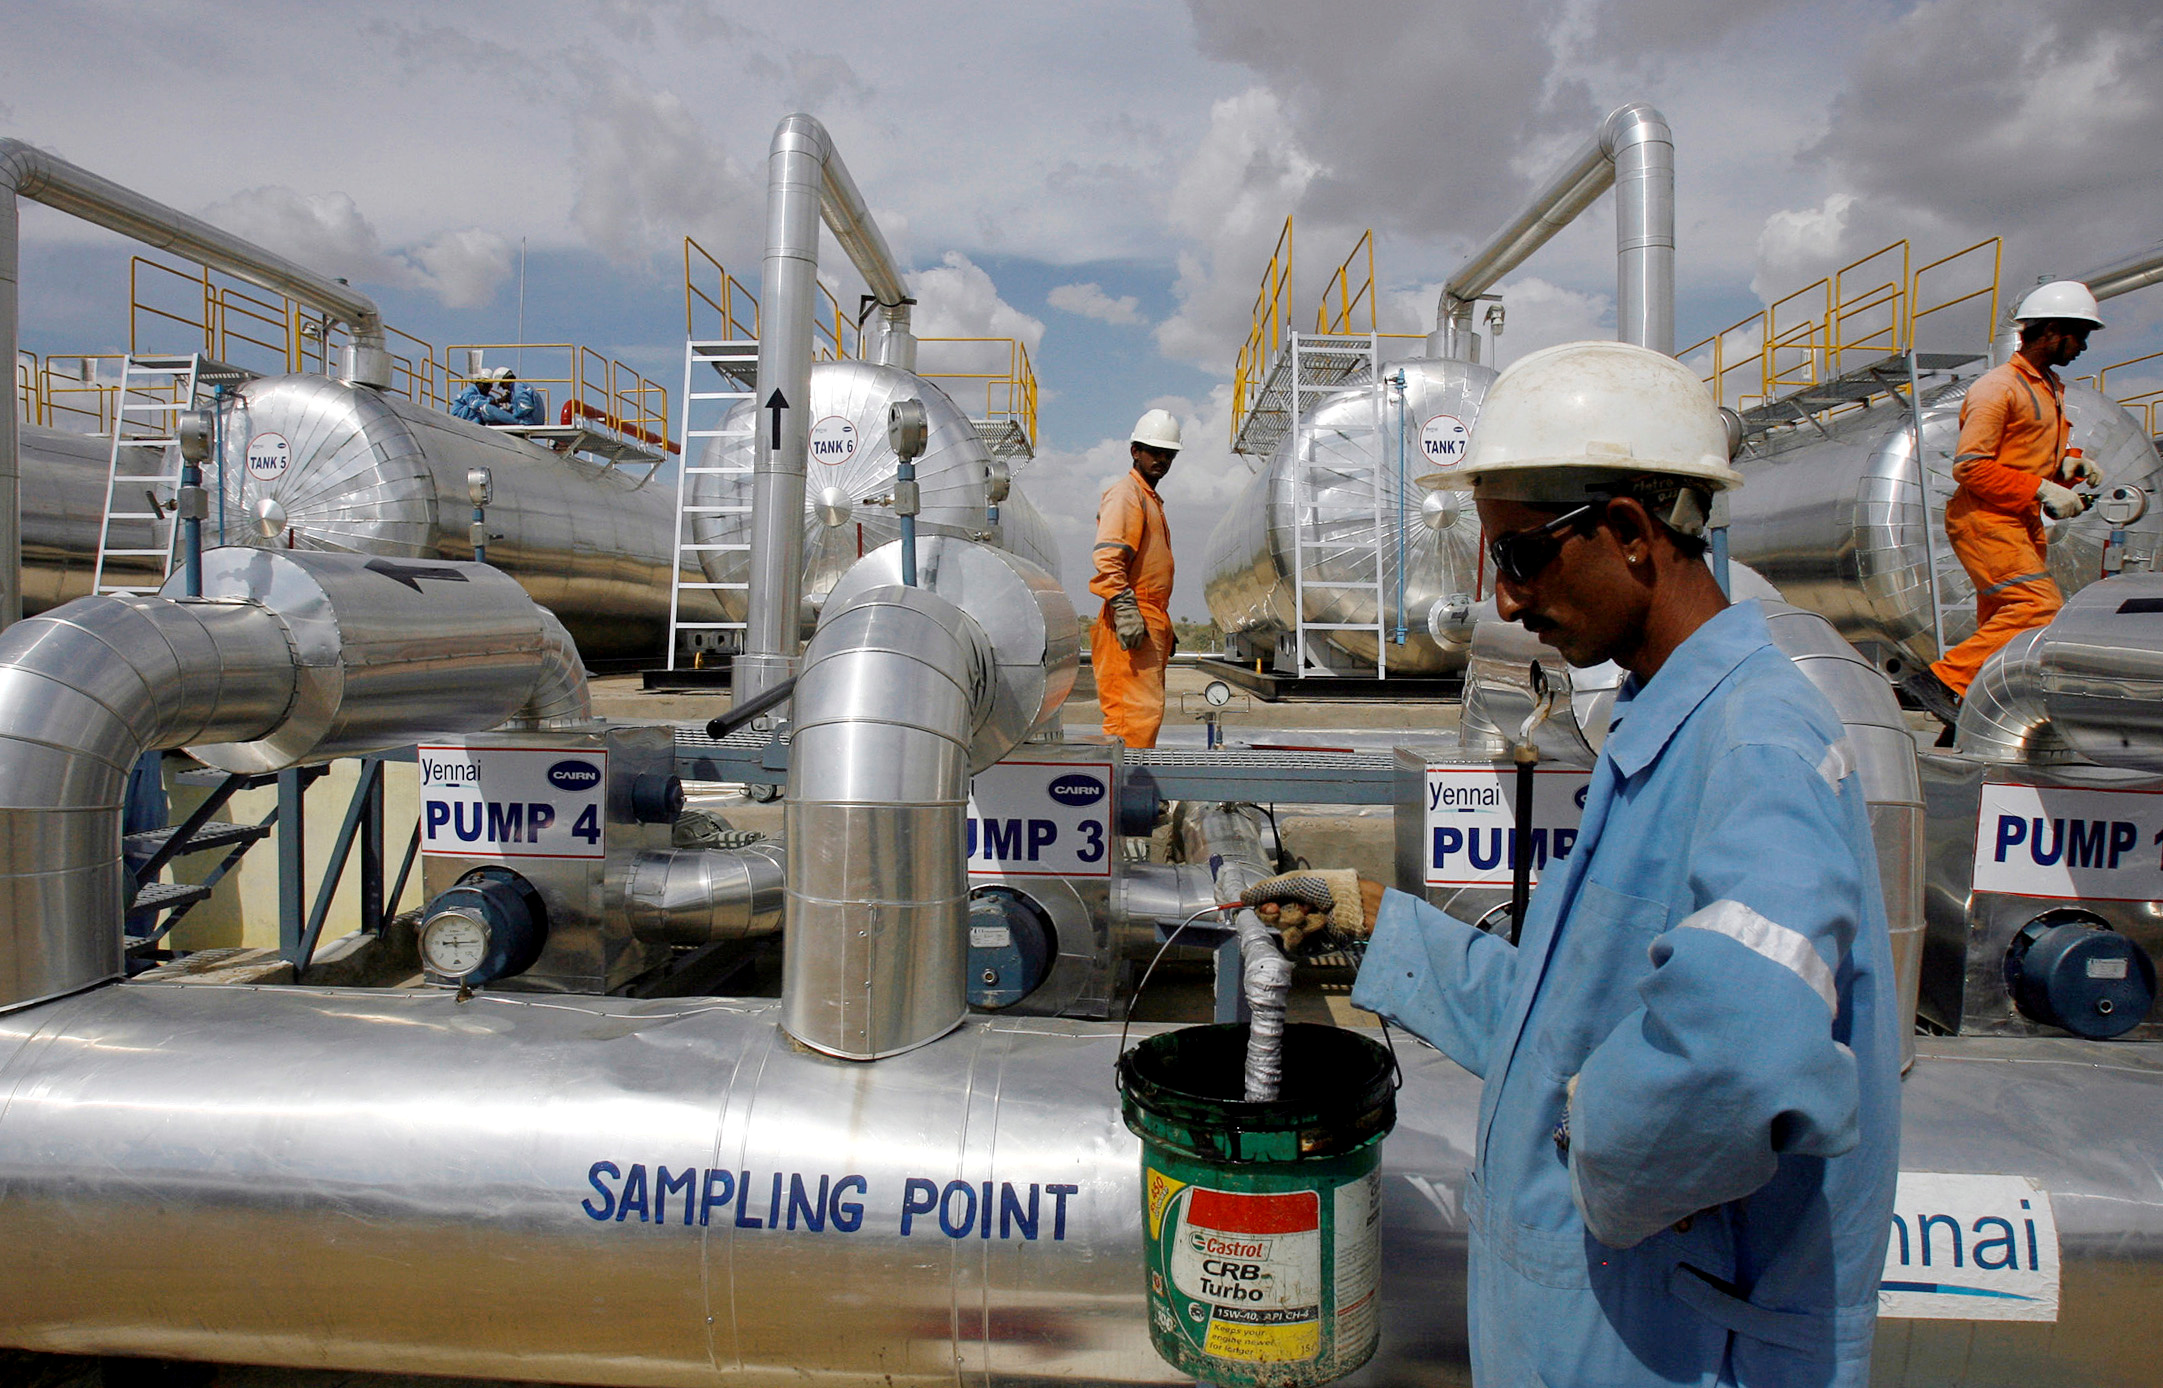 Cairn India employees work at a storage facility for crude oil at Mangala oil field at Barmer in the desert Indian state of Rajasthan August 29, 2009. REUTERS/Parth Sanyal/File Photo